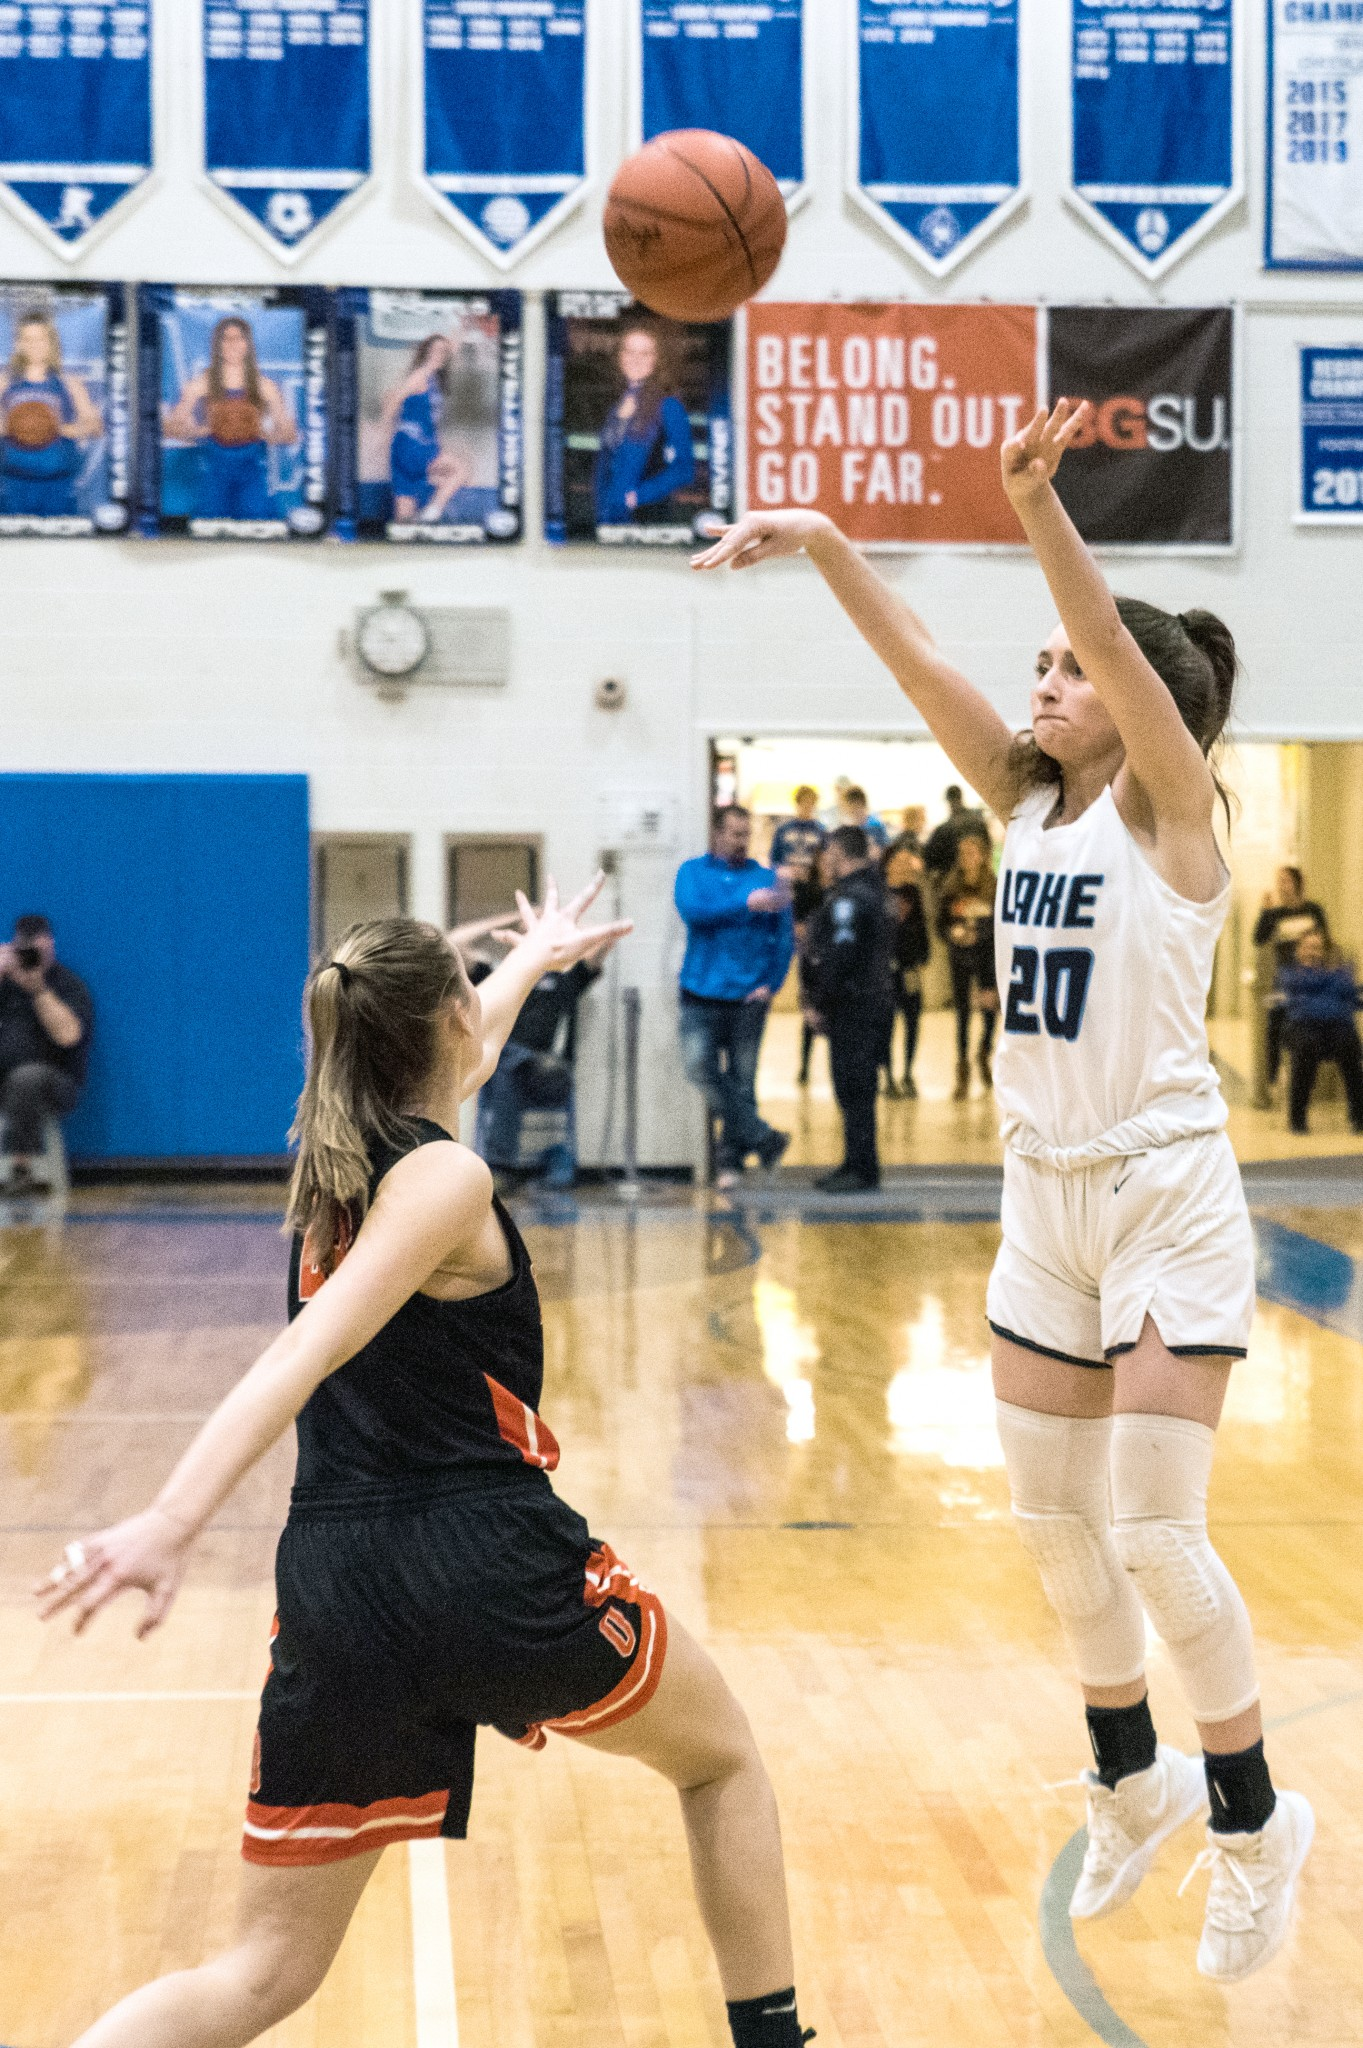 """Last year, then-Lake sophomore Delani Robinson shoots a jumper in the Flyers&#039; district tournament win over Otsego at Anthony Wayne&#039;s Dick Albaugh Athletics and Physical Education Center. (Press file photo by Russ Lytle/<a href=""""http://www.Facebook.com/RussLytle/RHP"""">www.Facebook.com/RussLytle/RHP</a>)"""